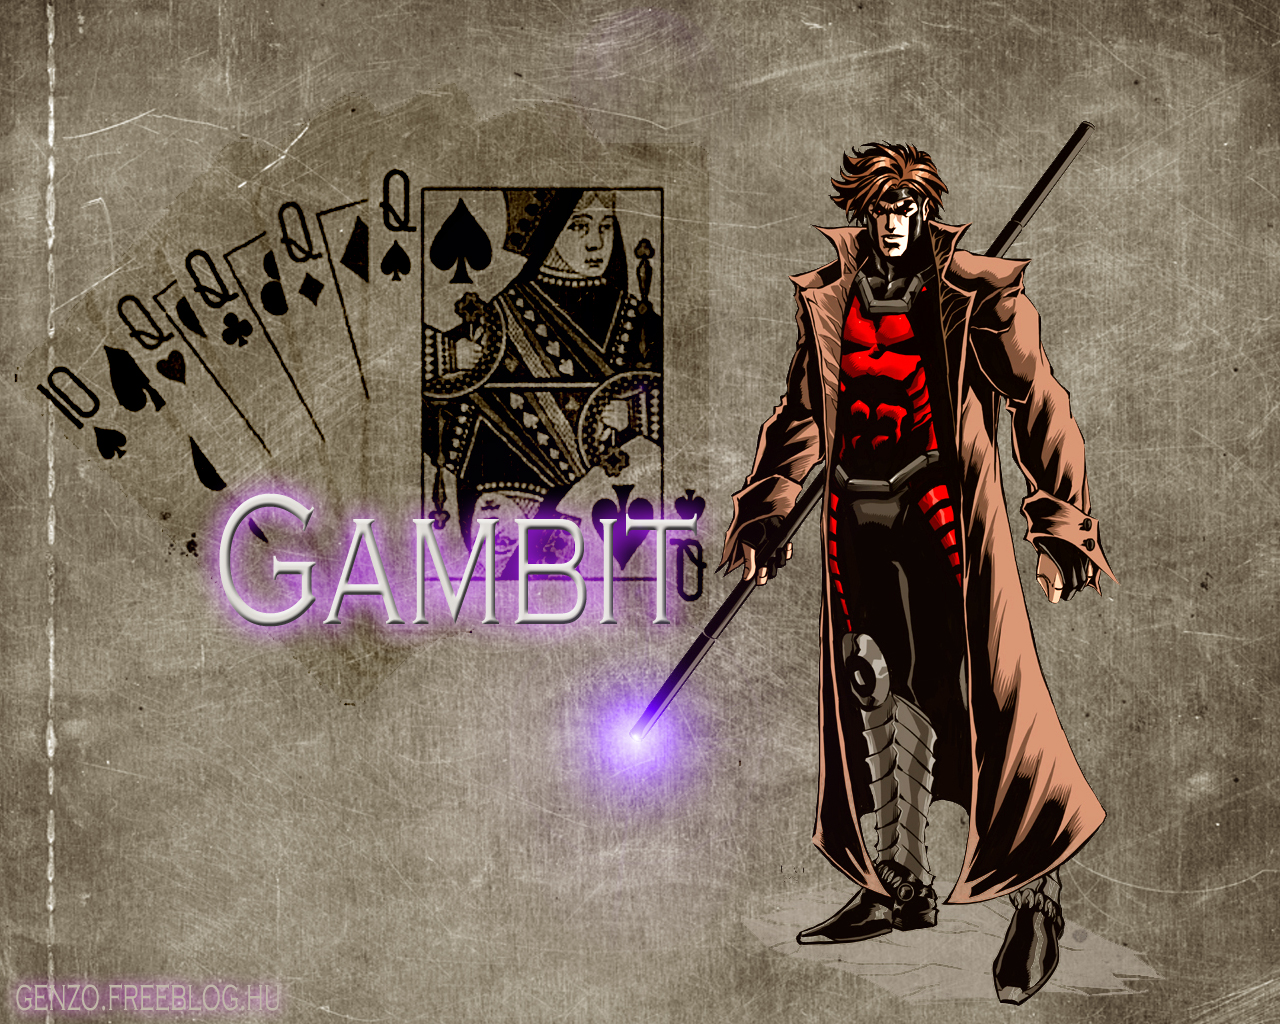 Gambit Live Backgrounds HD Wallpapers   GsFDcY 1280x1024